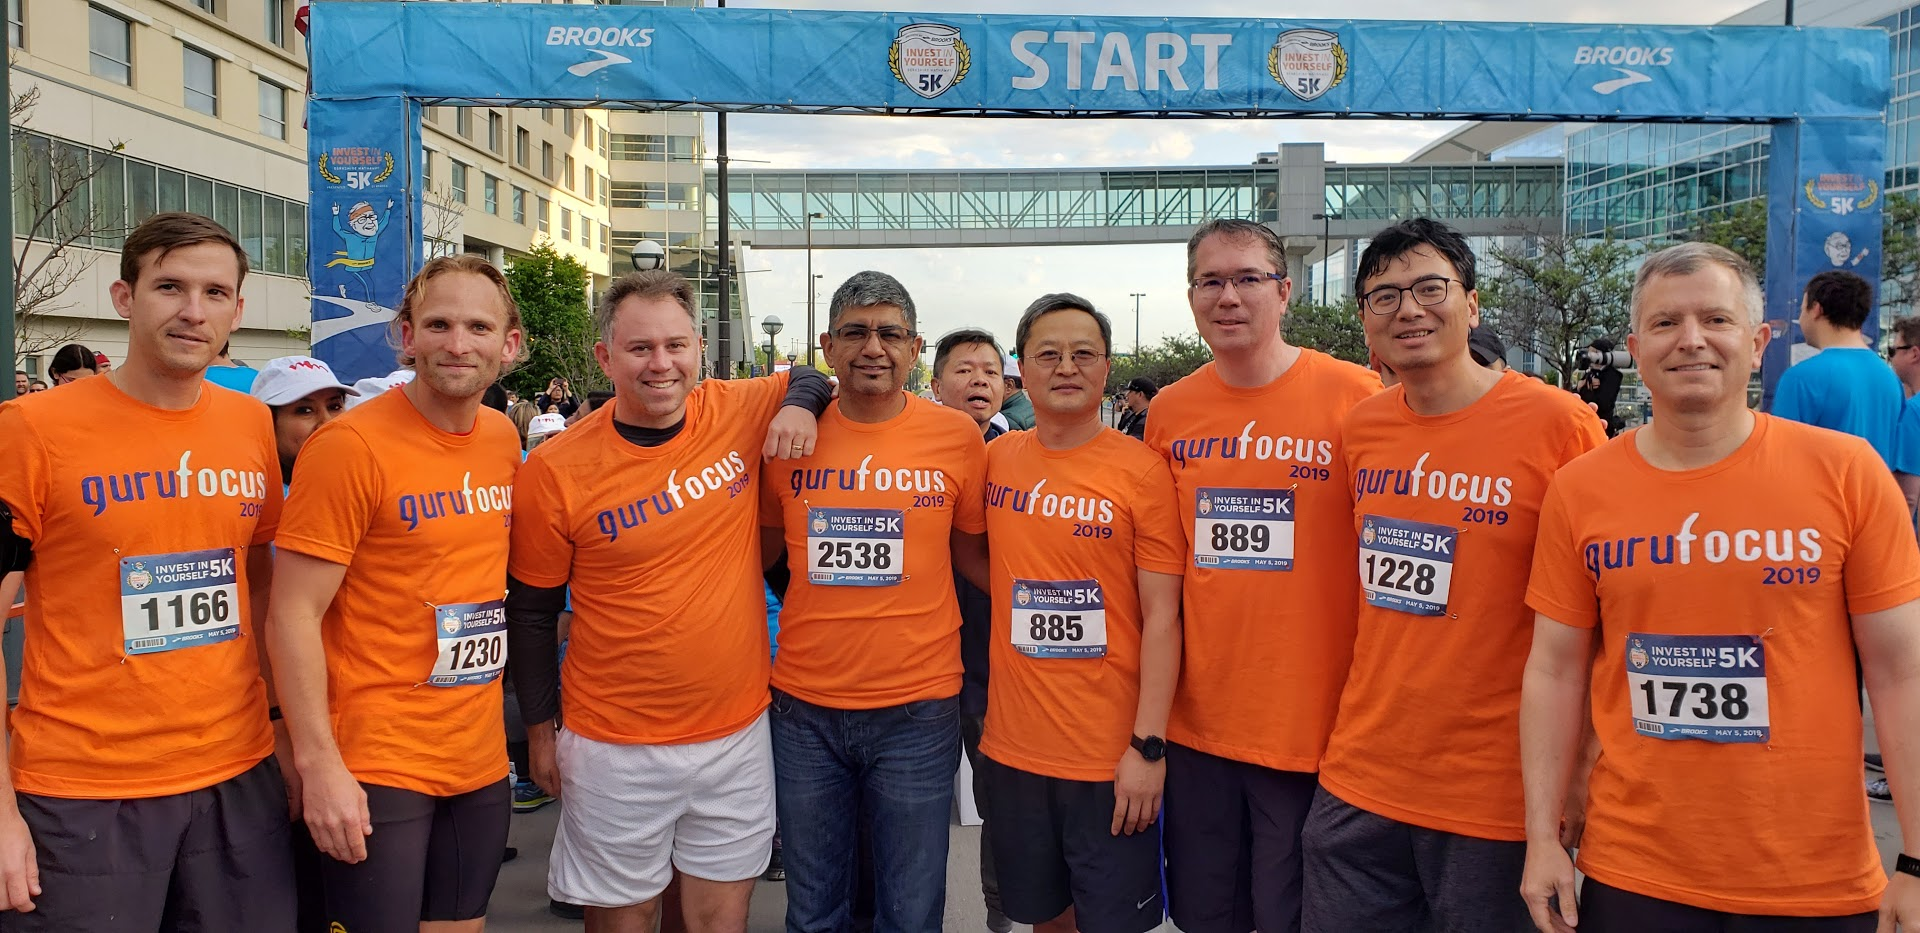 Value Conference attendees participate in the Berkshire Hathaway Invest in Yourself 5K race.